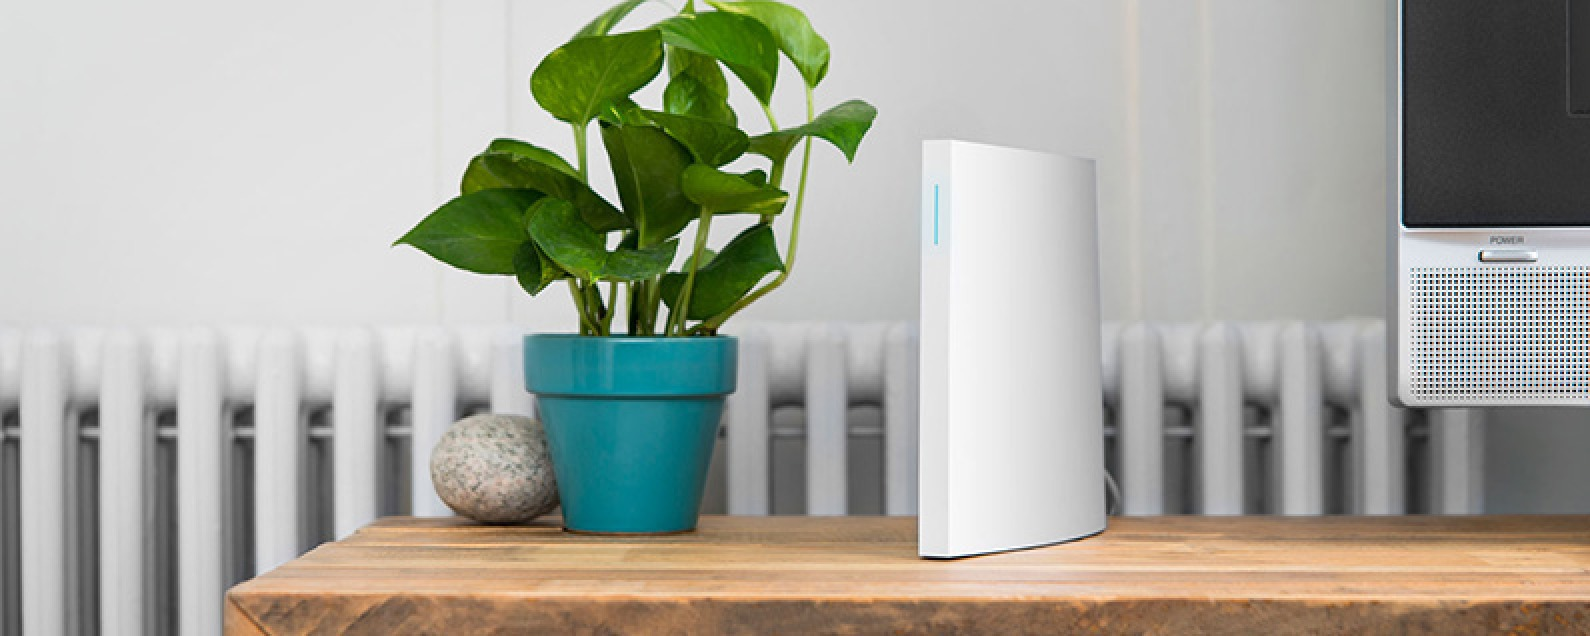 Wink Hub 2 Review: Best Home Automation Hub Gets Even Better